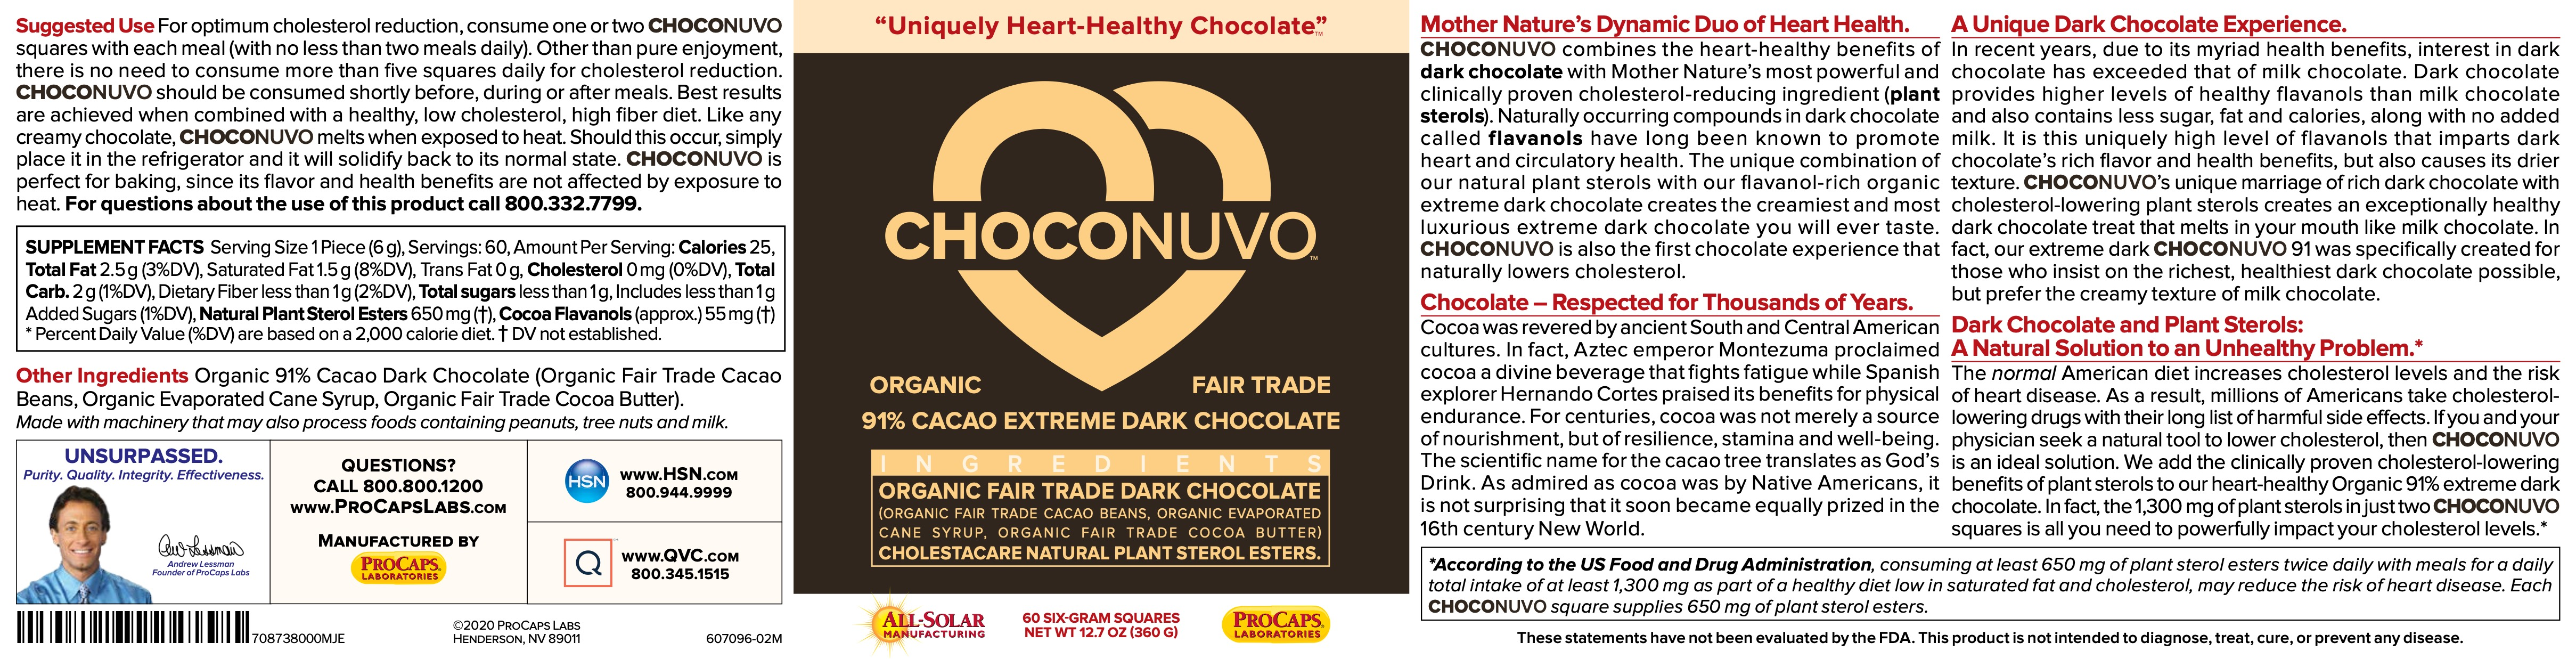 ChocoNuvo-91-Cacao-Extreme-Dark-Chocolate-Cardiovascular-Health